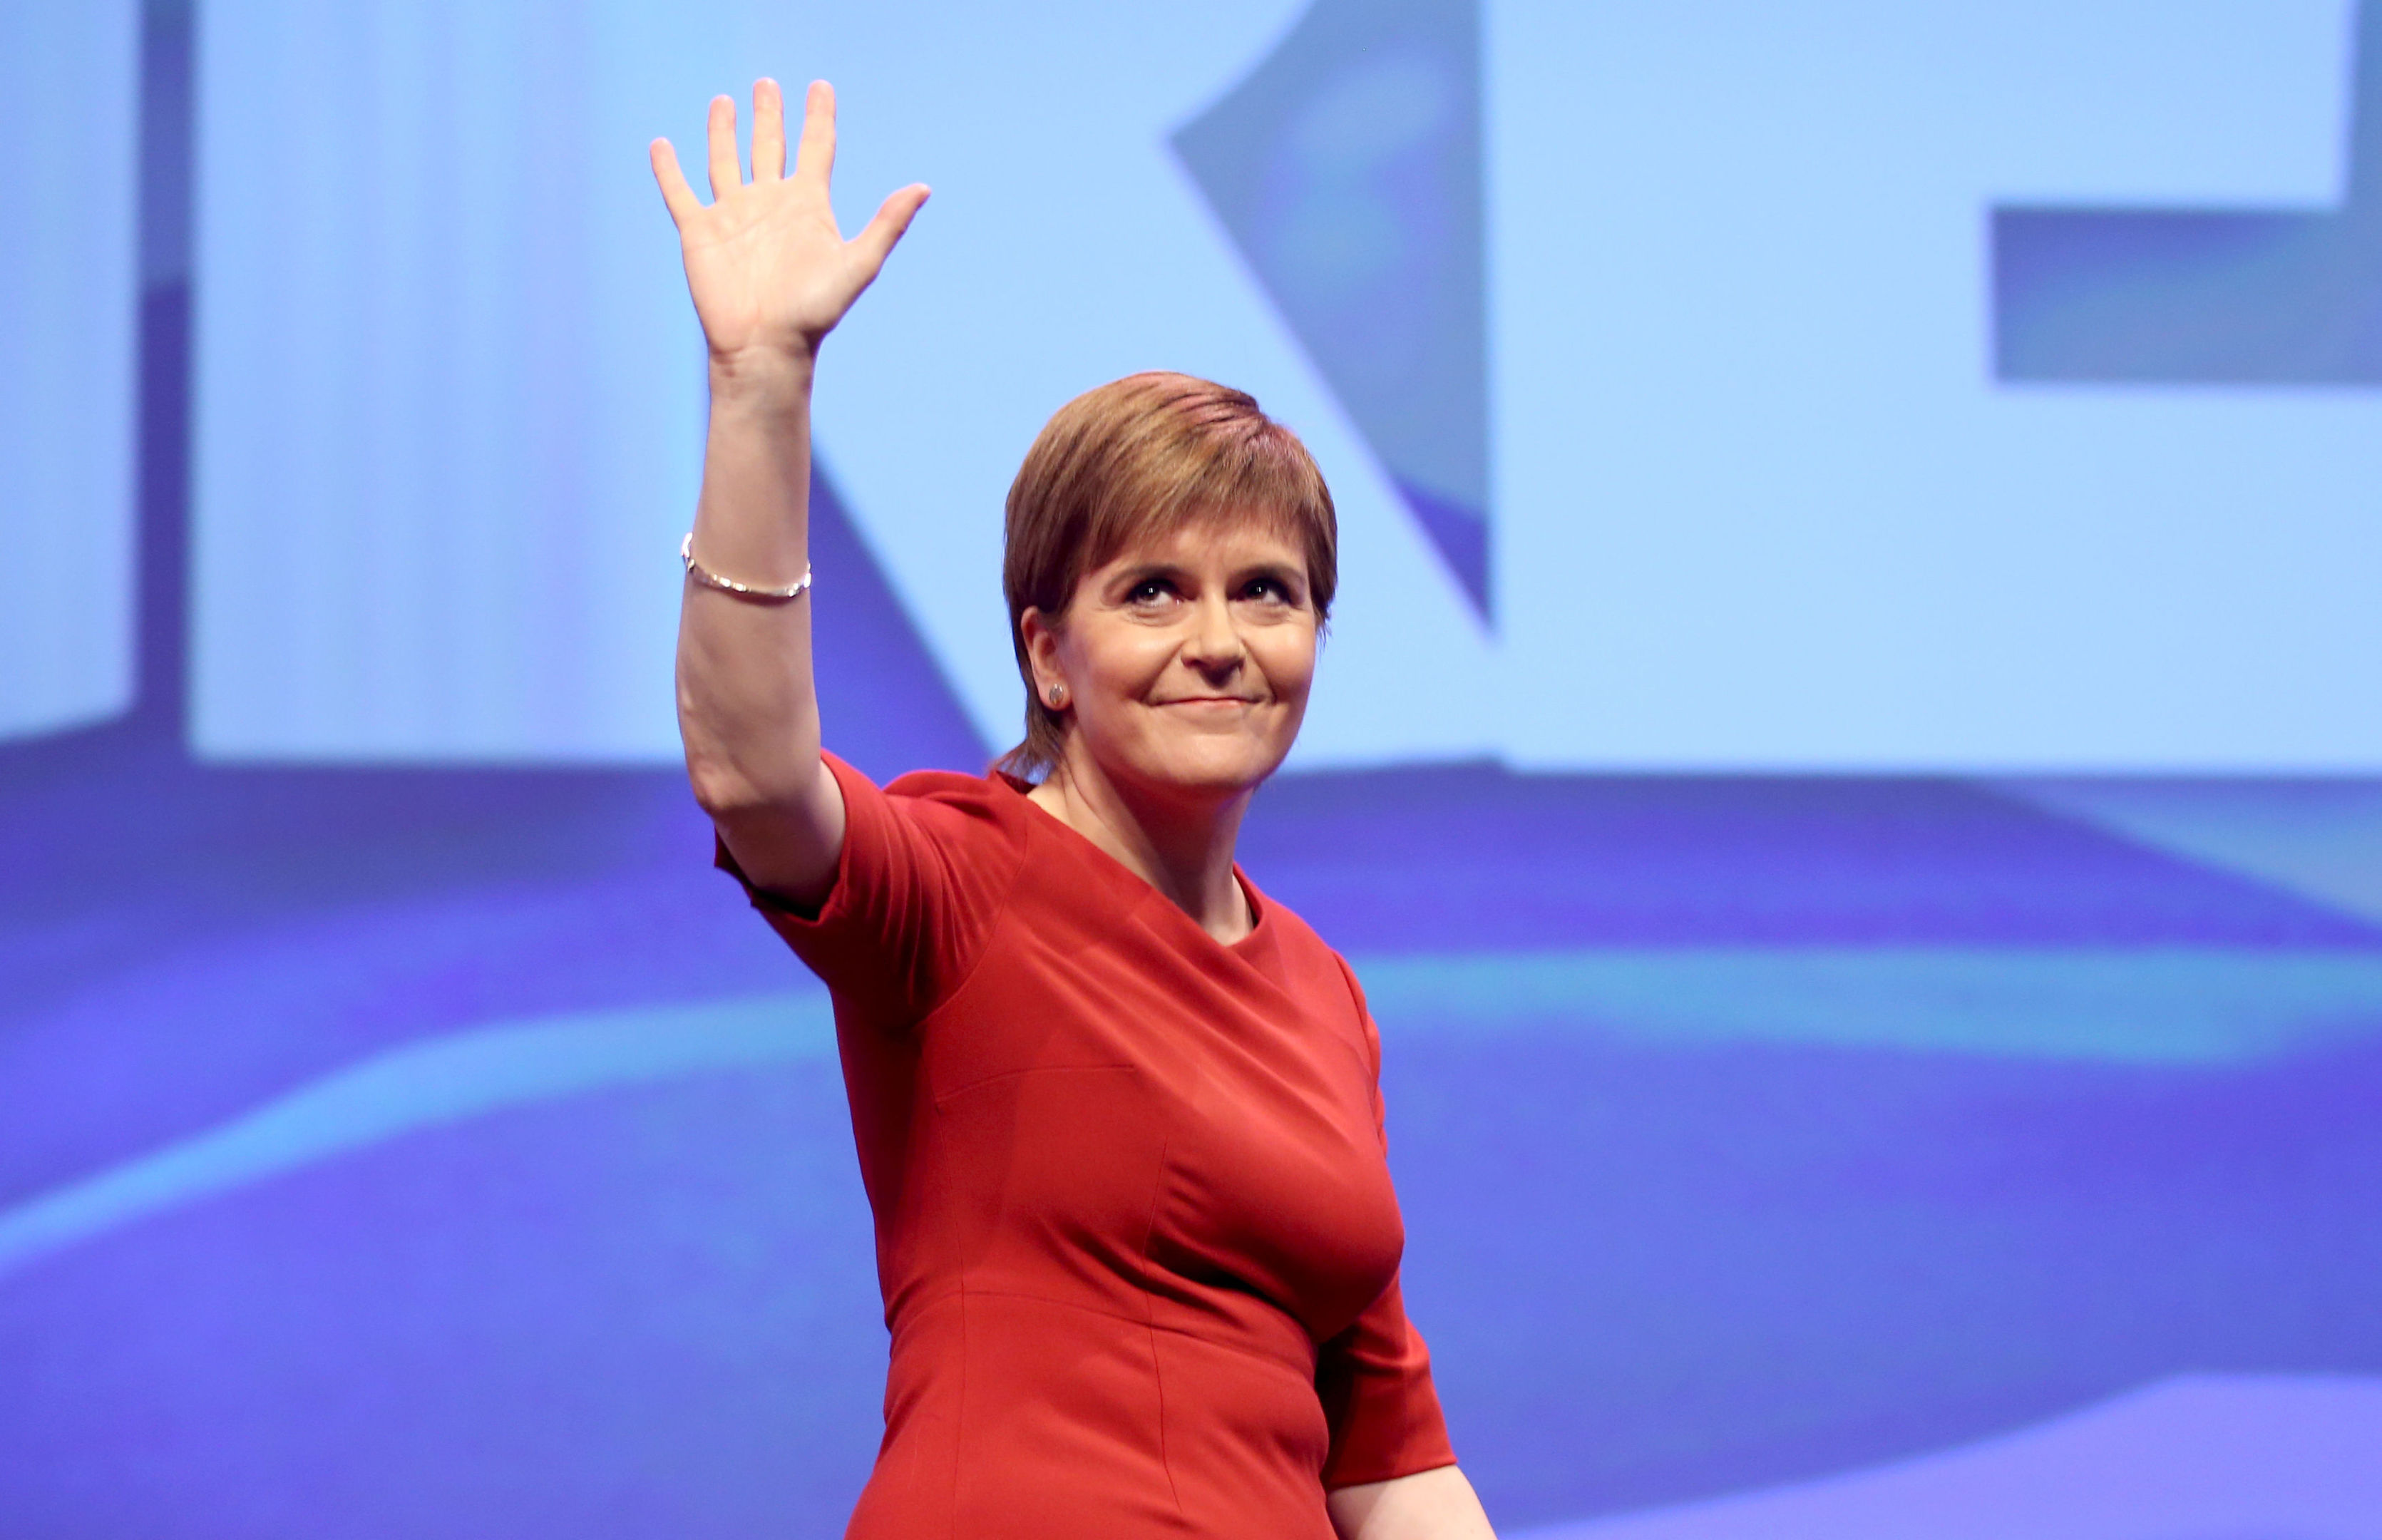 First Minister Nicola Sturgeon after delivering her keynote speech at the Scottish National Party conference at the SEC Centre in Glasgow. (Jane Barlow/PA Wire)